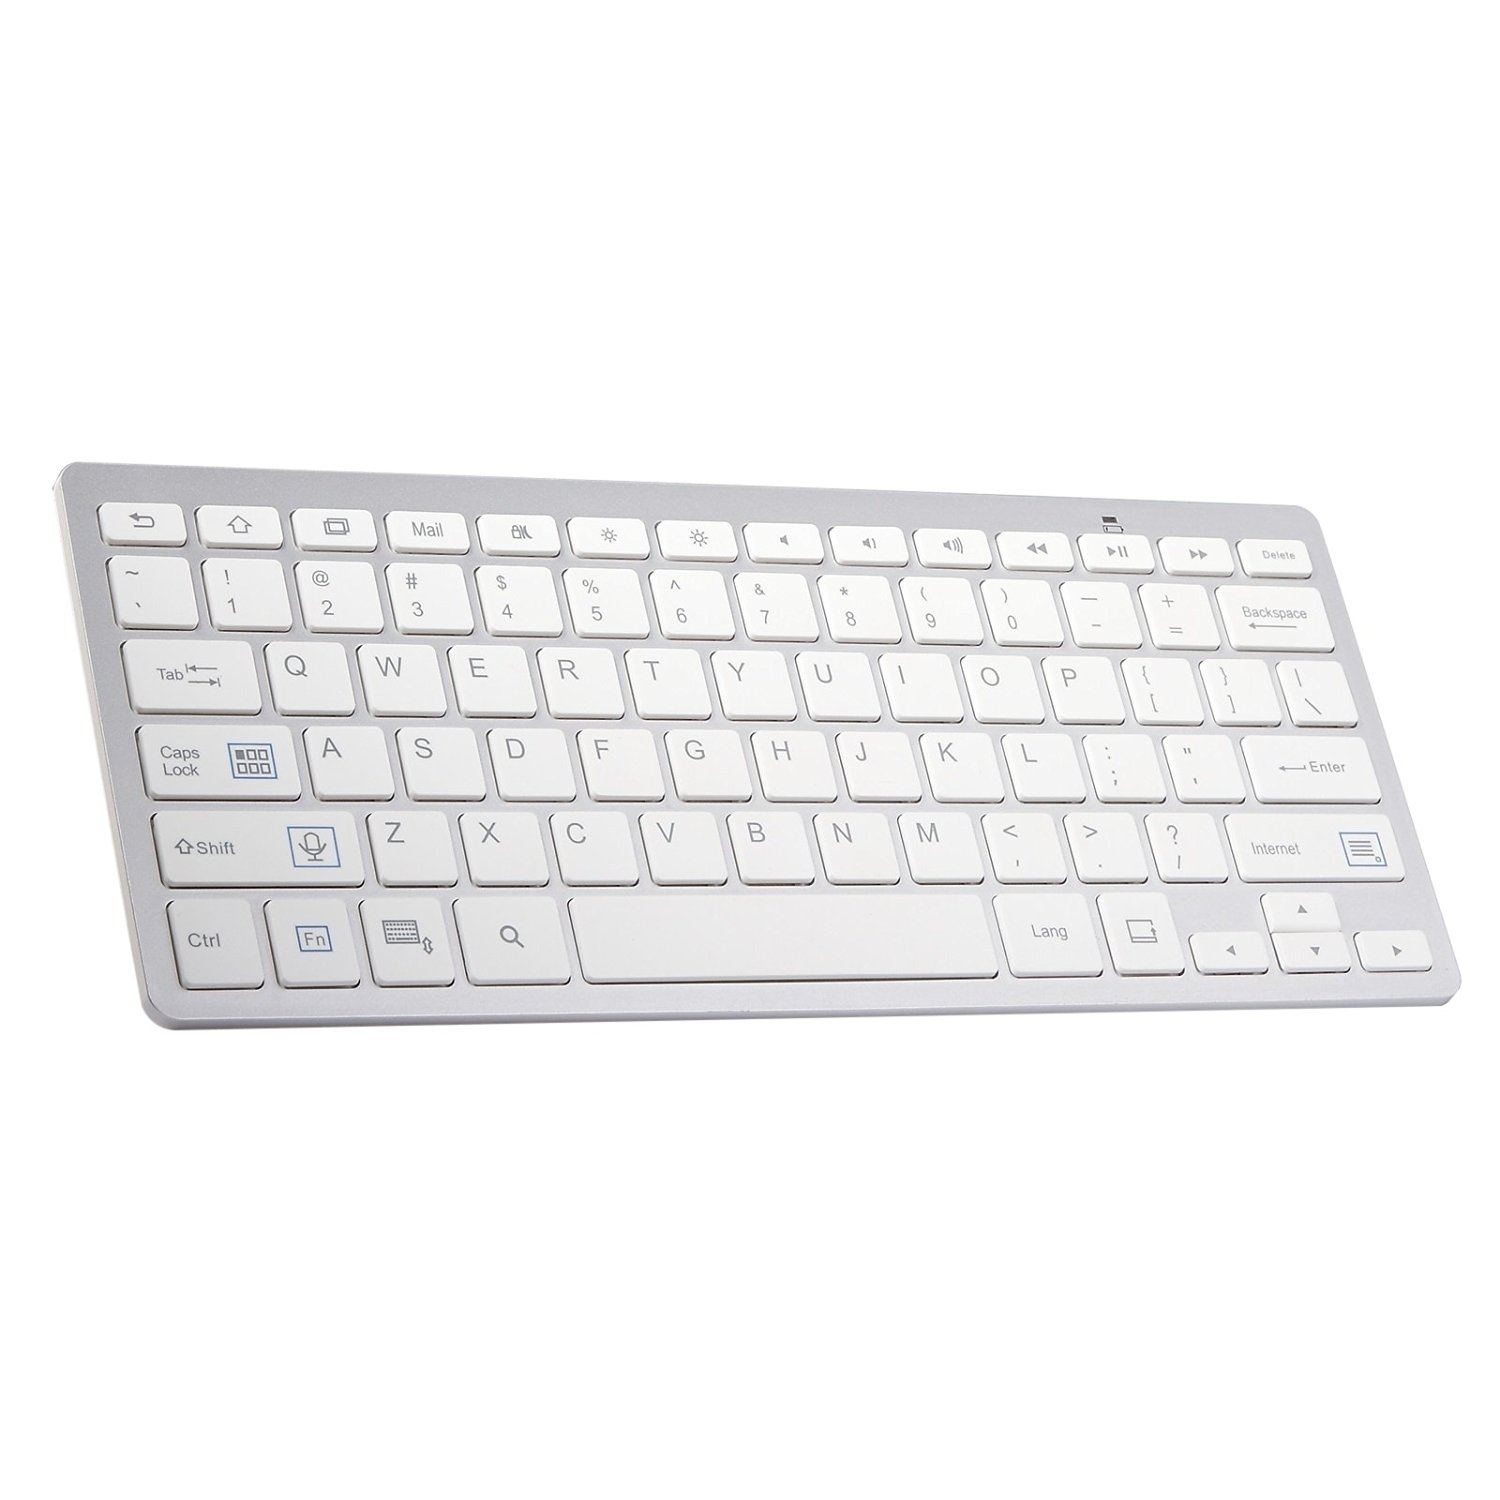 2422c19949a Get Quotations · Sweetkisska Wireless Keyboard Portable Bluetooth 3.0  Layout Keyboard for PC Laptop Tablet Smartphone for iPad Bluetooth